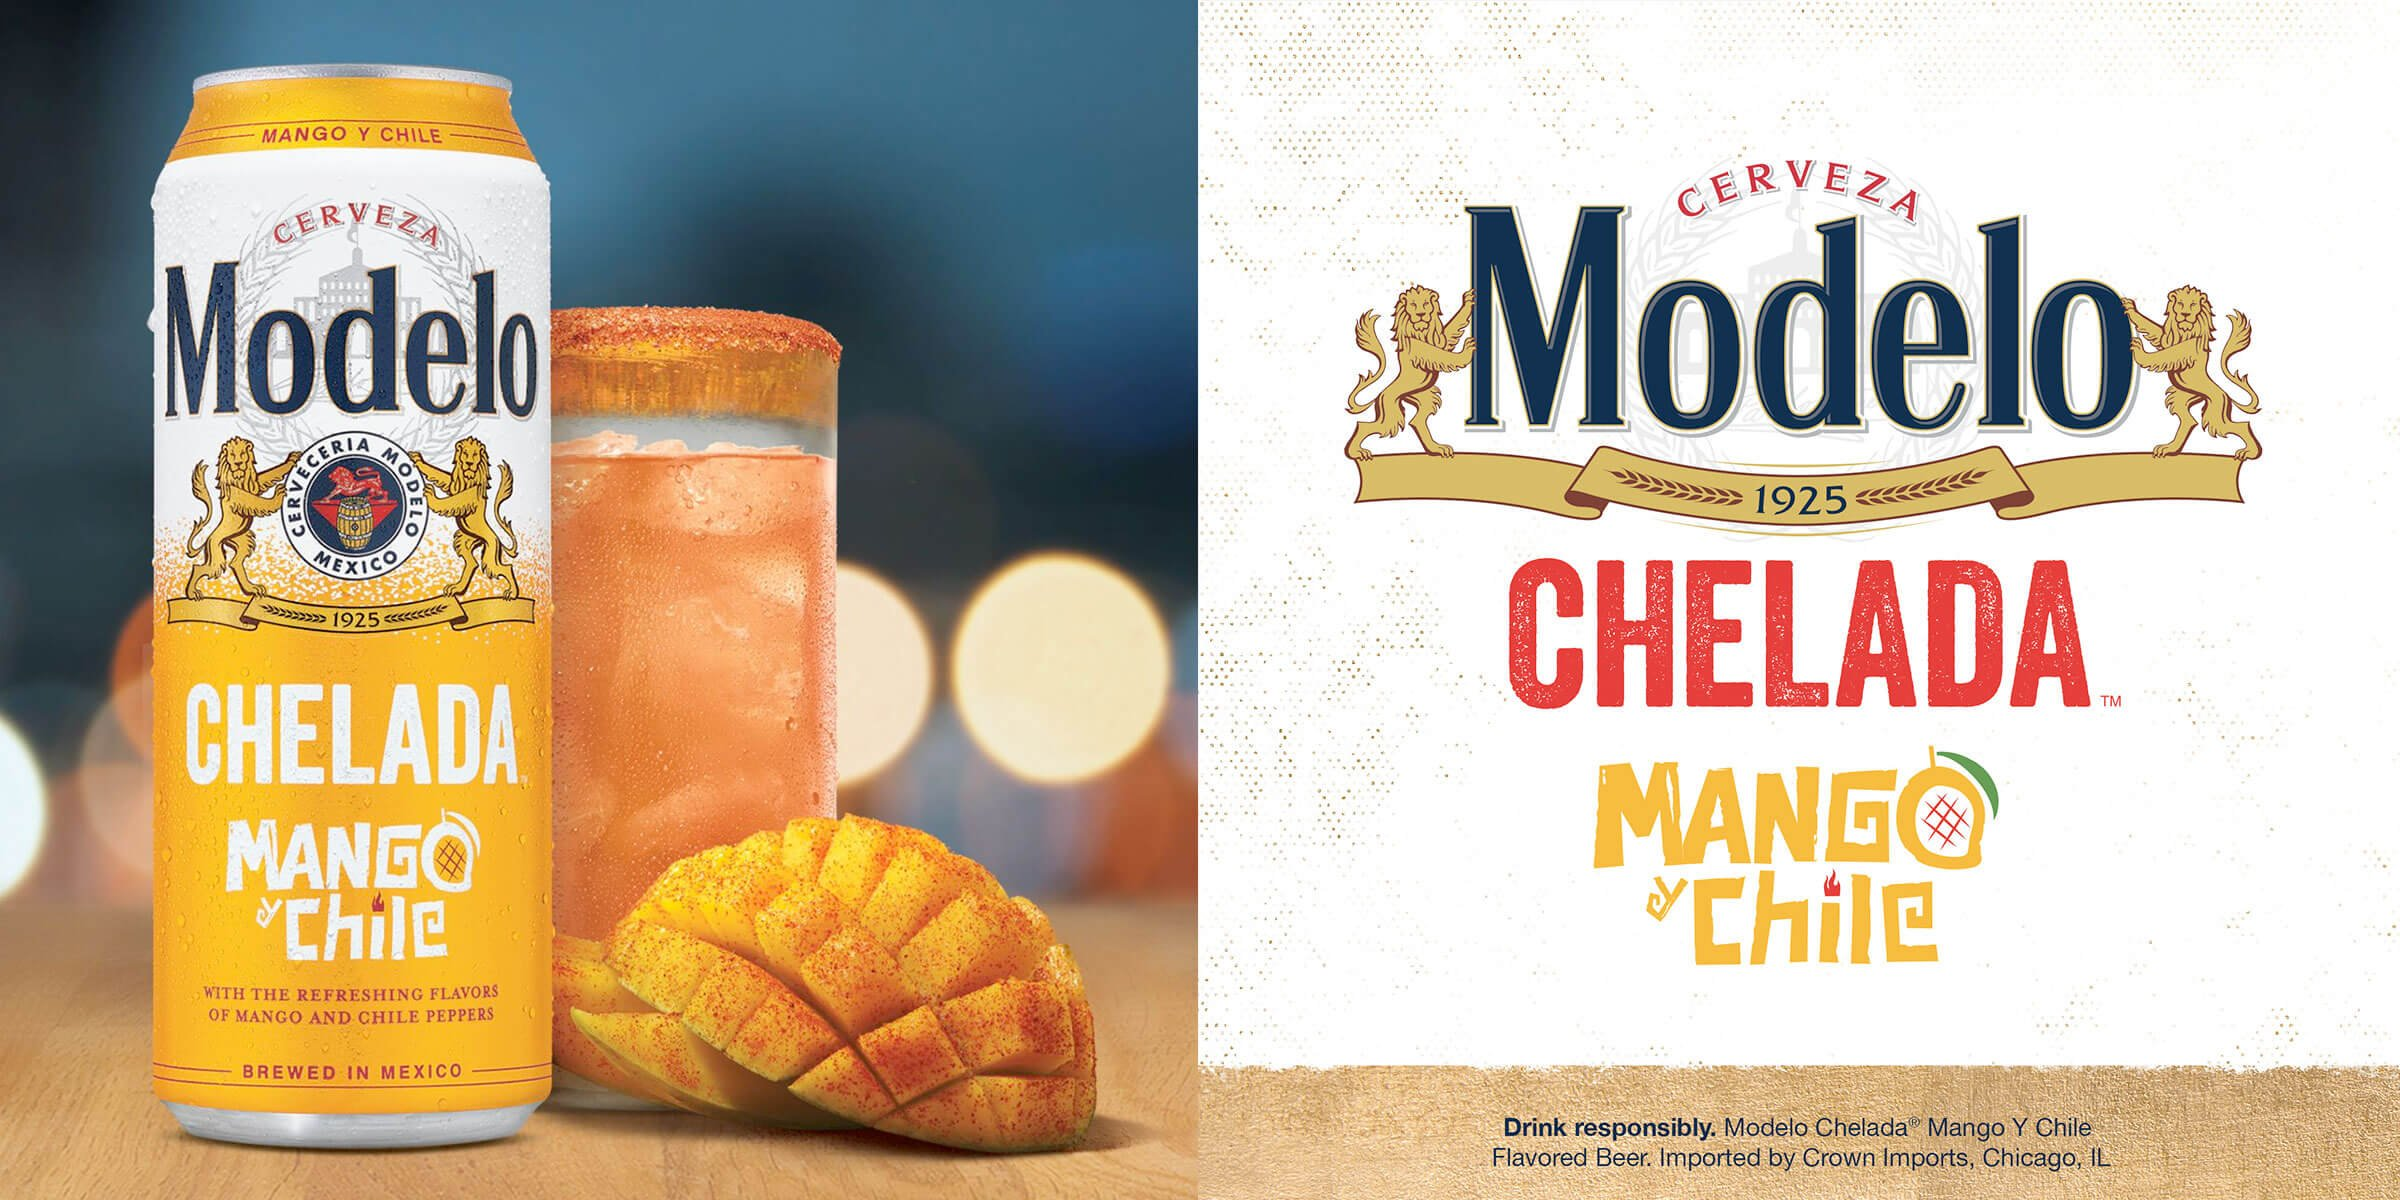 Modelo announced the Modelo Chelada Mango y Chile — the newest flavor to the No.1 Chelada brand lineup and released nationwide via Constellation Brands.